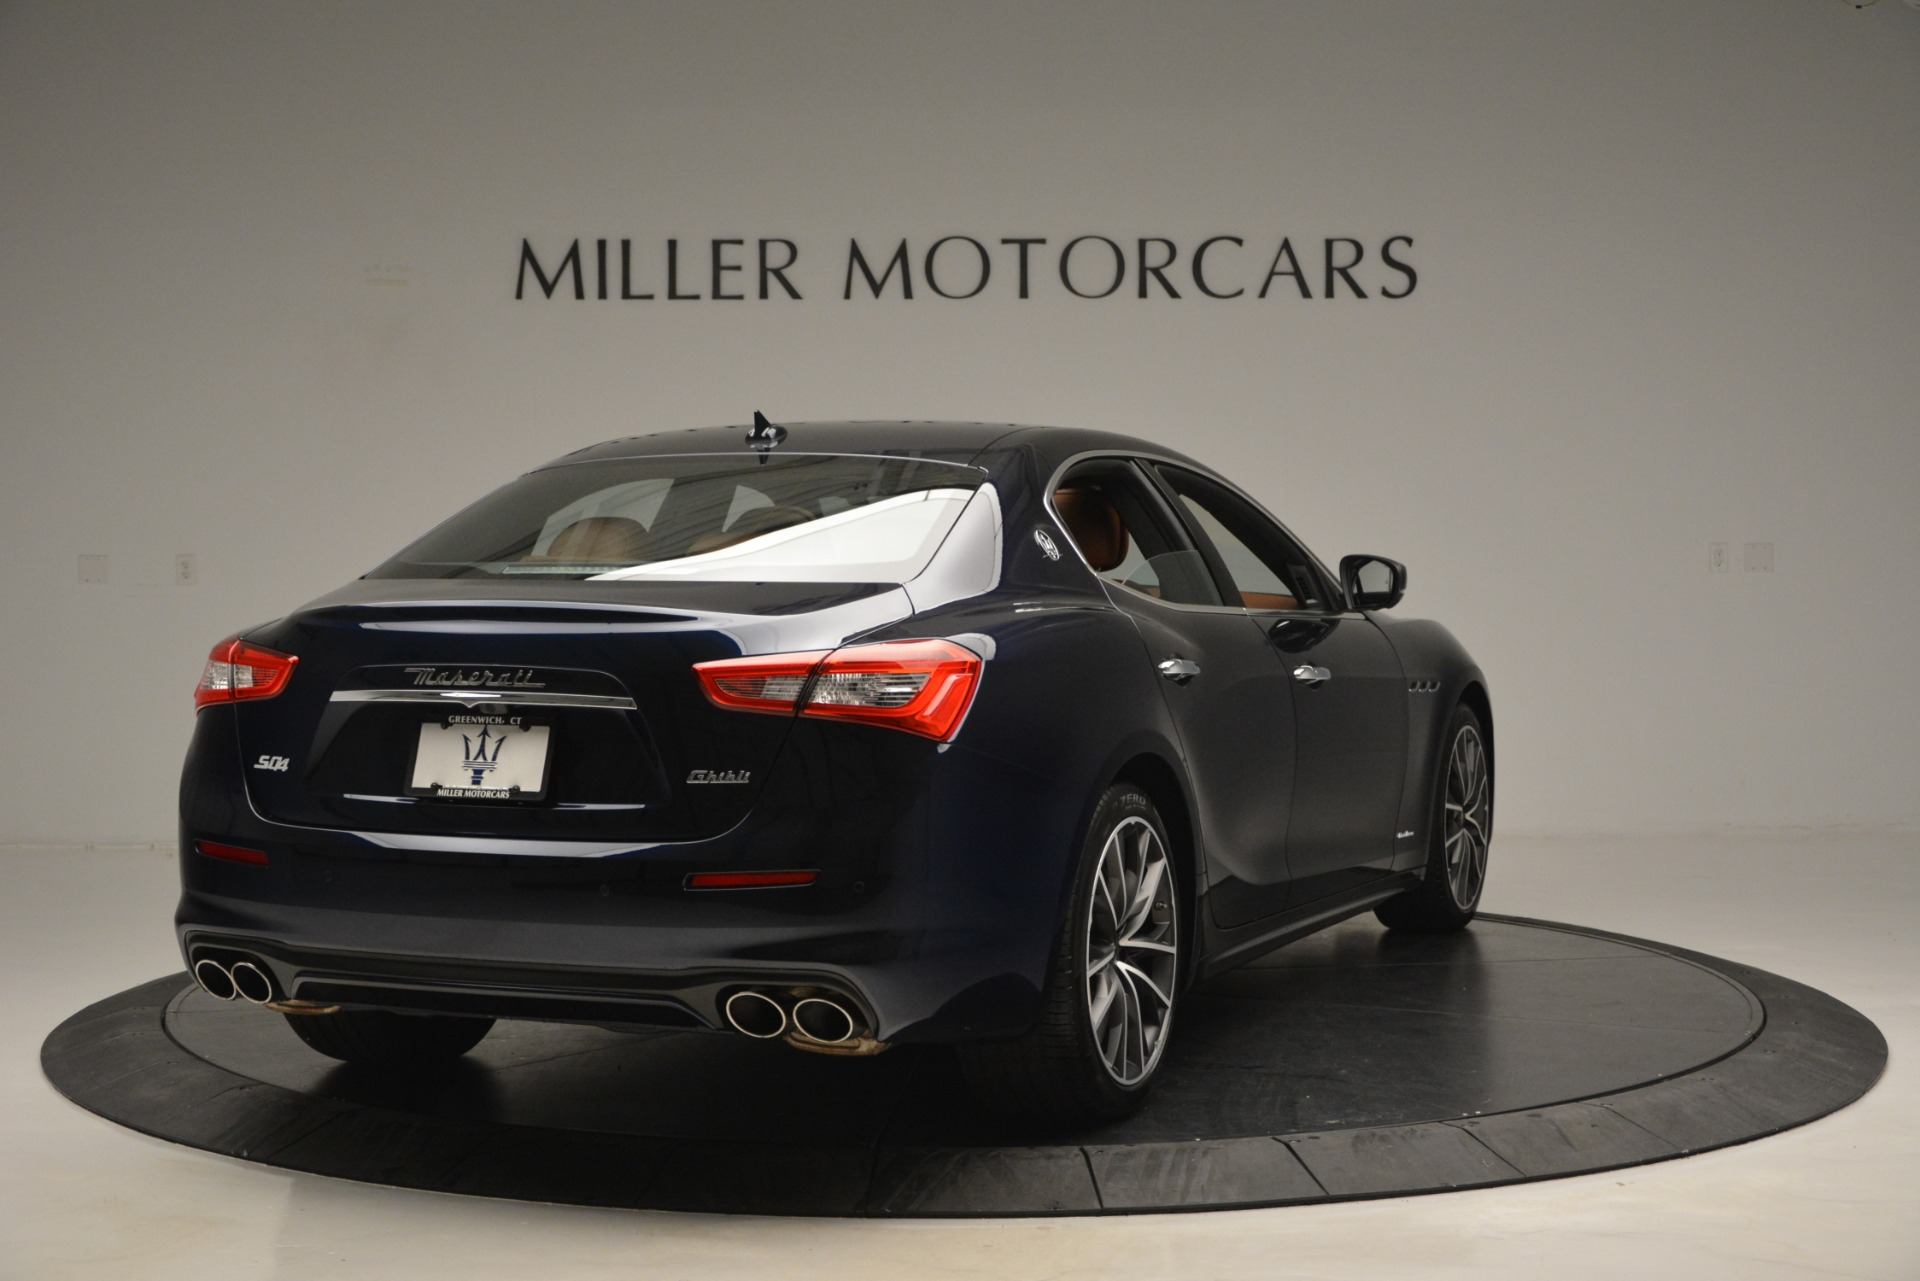 New 2019 Maserati Ghibli S Q4 GranLusso For Sale In Westport, CT 2882_p10